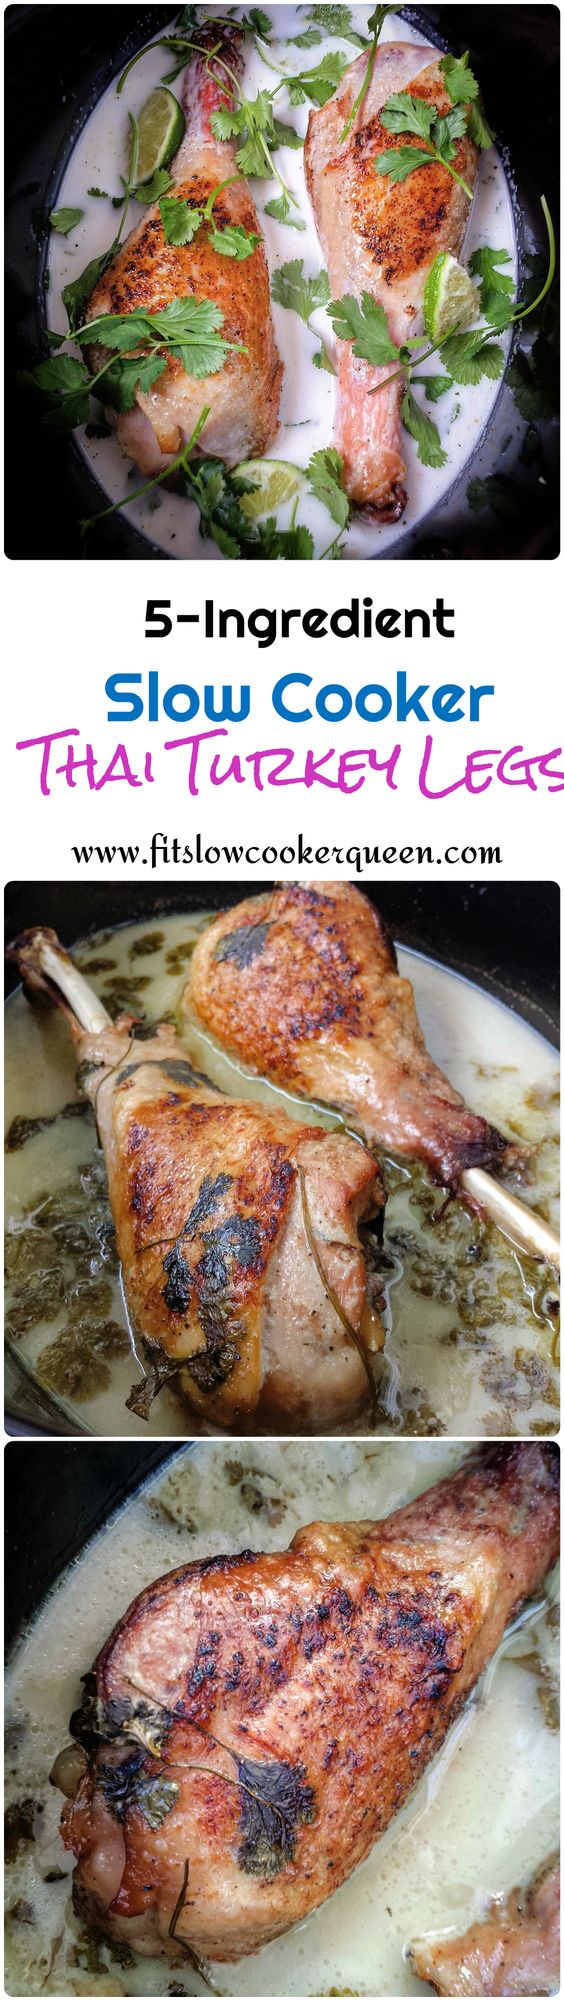 These turkey legs are slow cooked in the crock-pot with Thai flavors. The 5-ingredients includes lite coconut milk, cilantro and lemon-garlic seasoning.